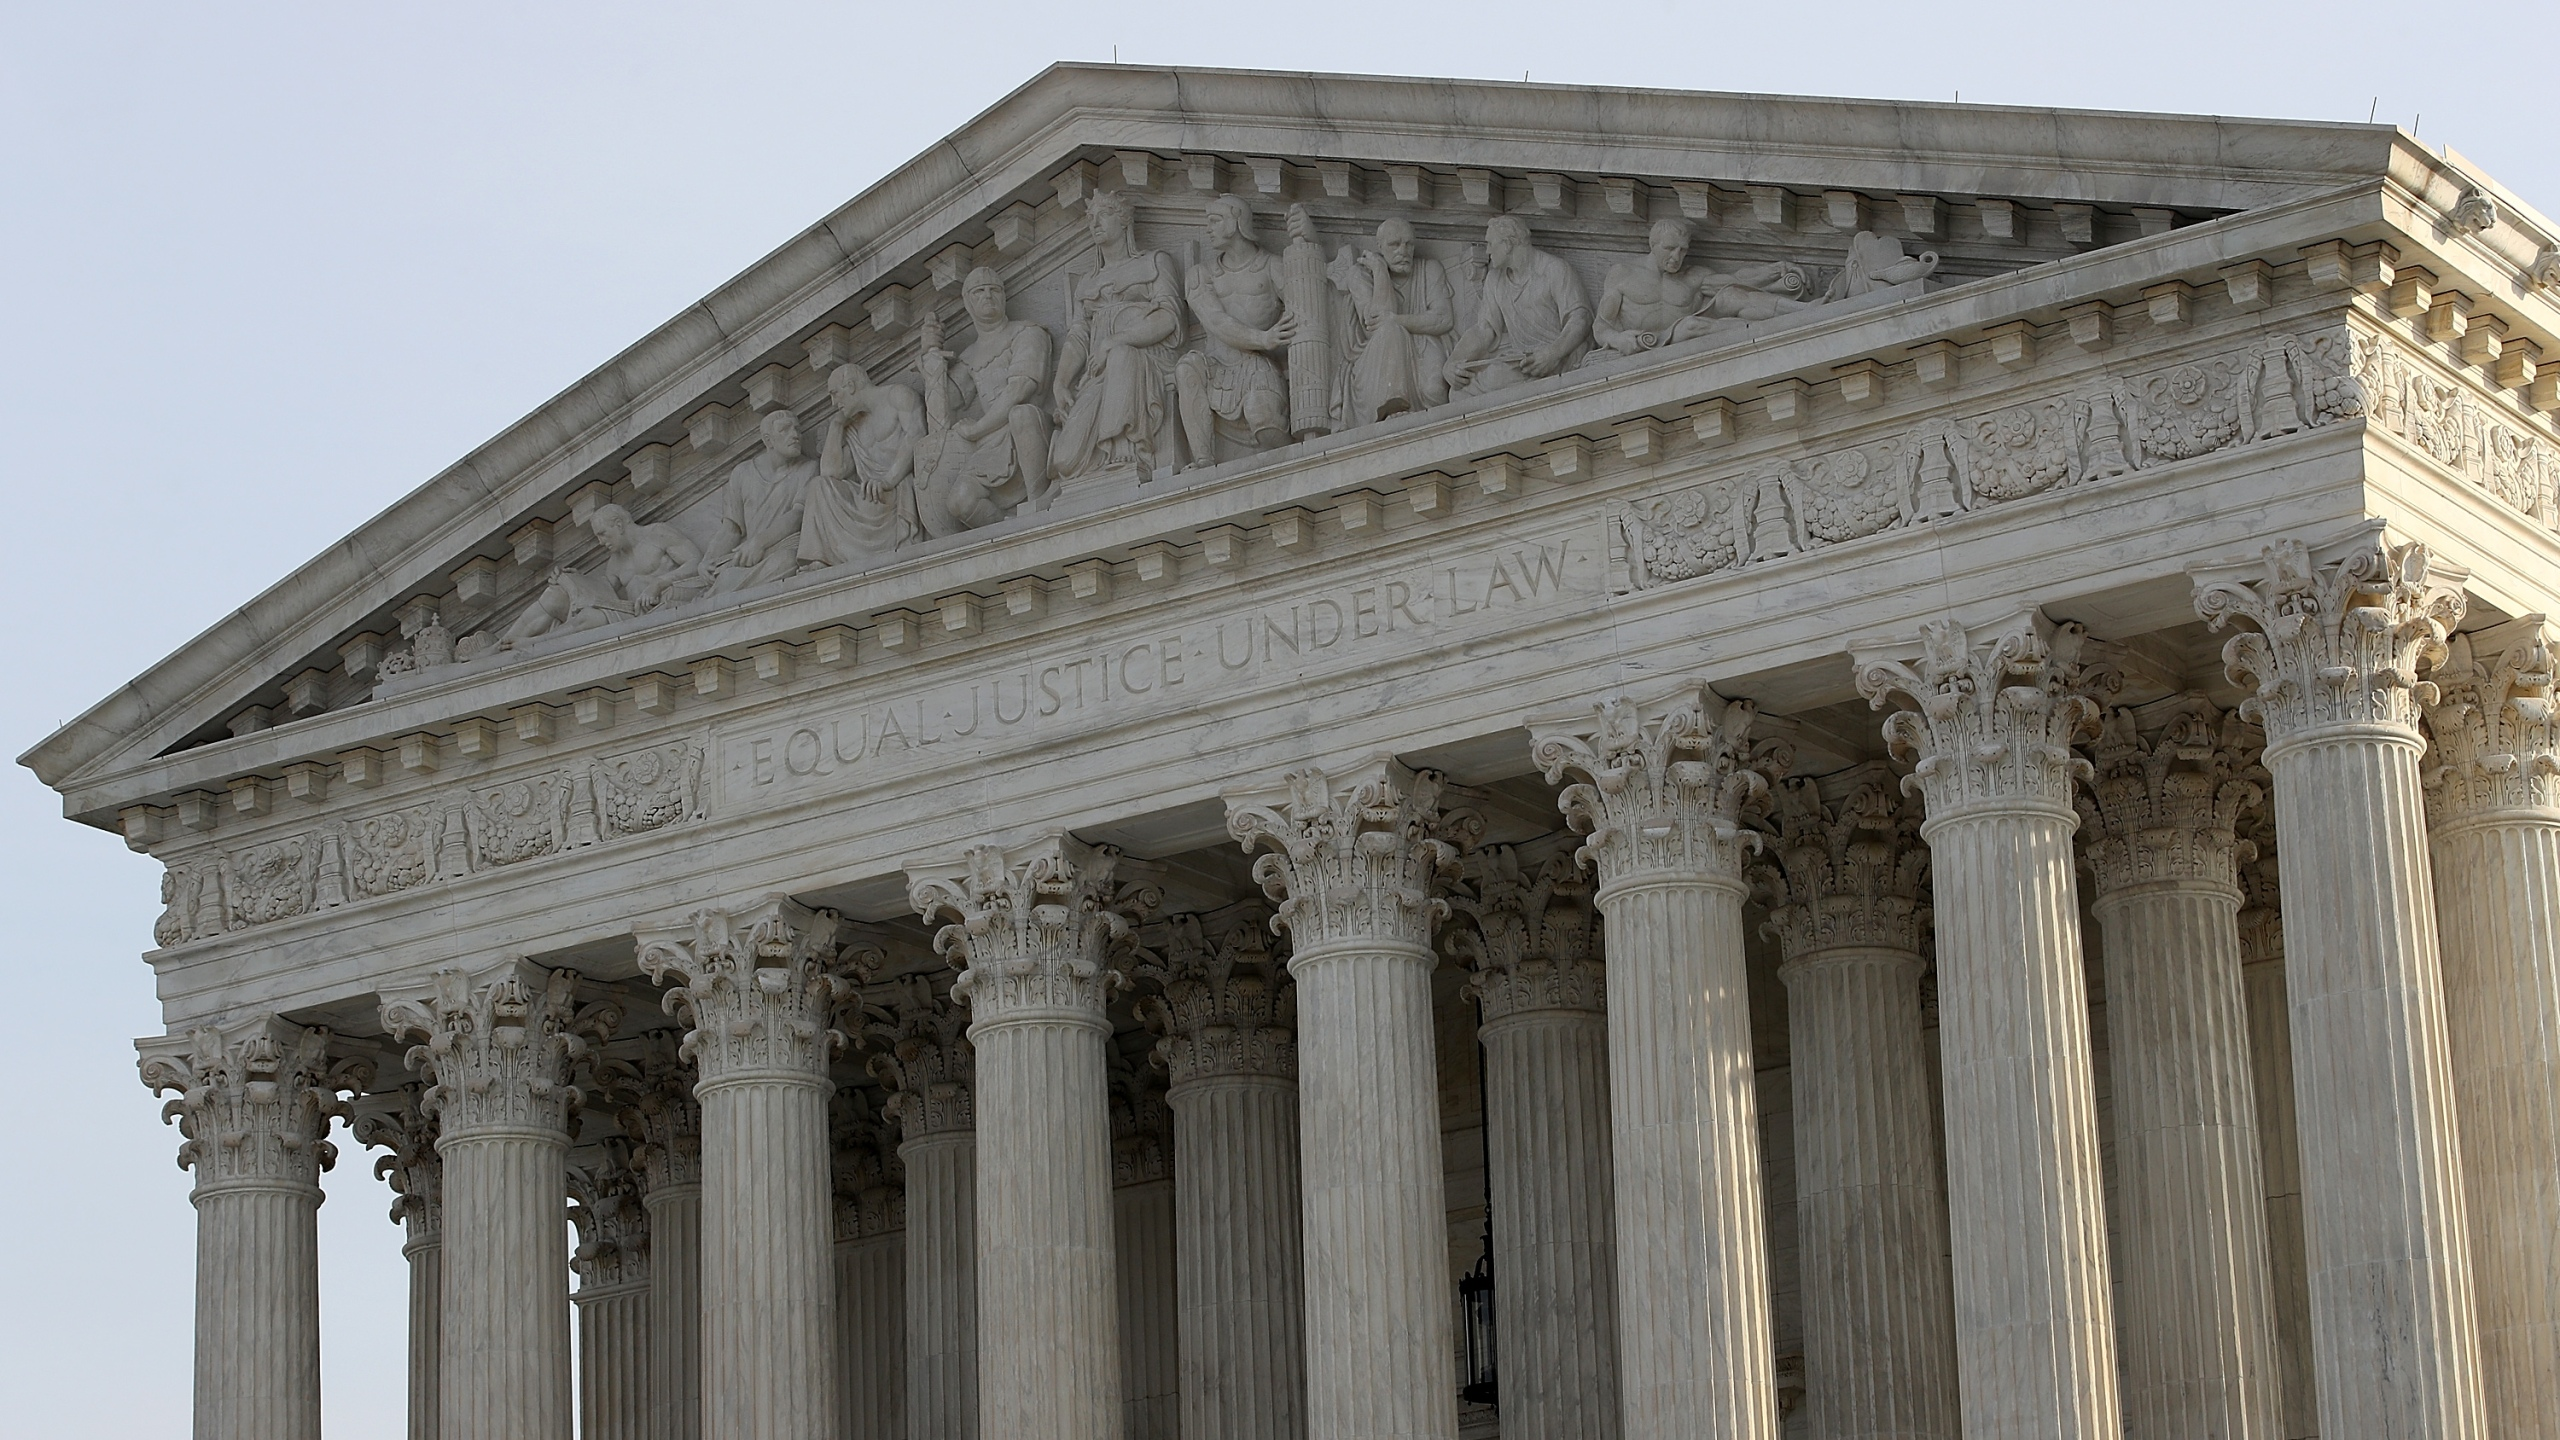 The U.S. Supreme Court is shown on December 4, 2017, in Washington, D.C. (Credit: Win McNamee/Getty Images)